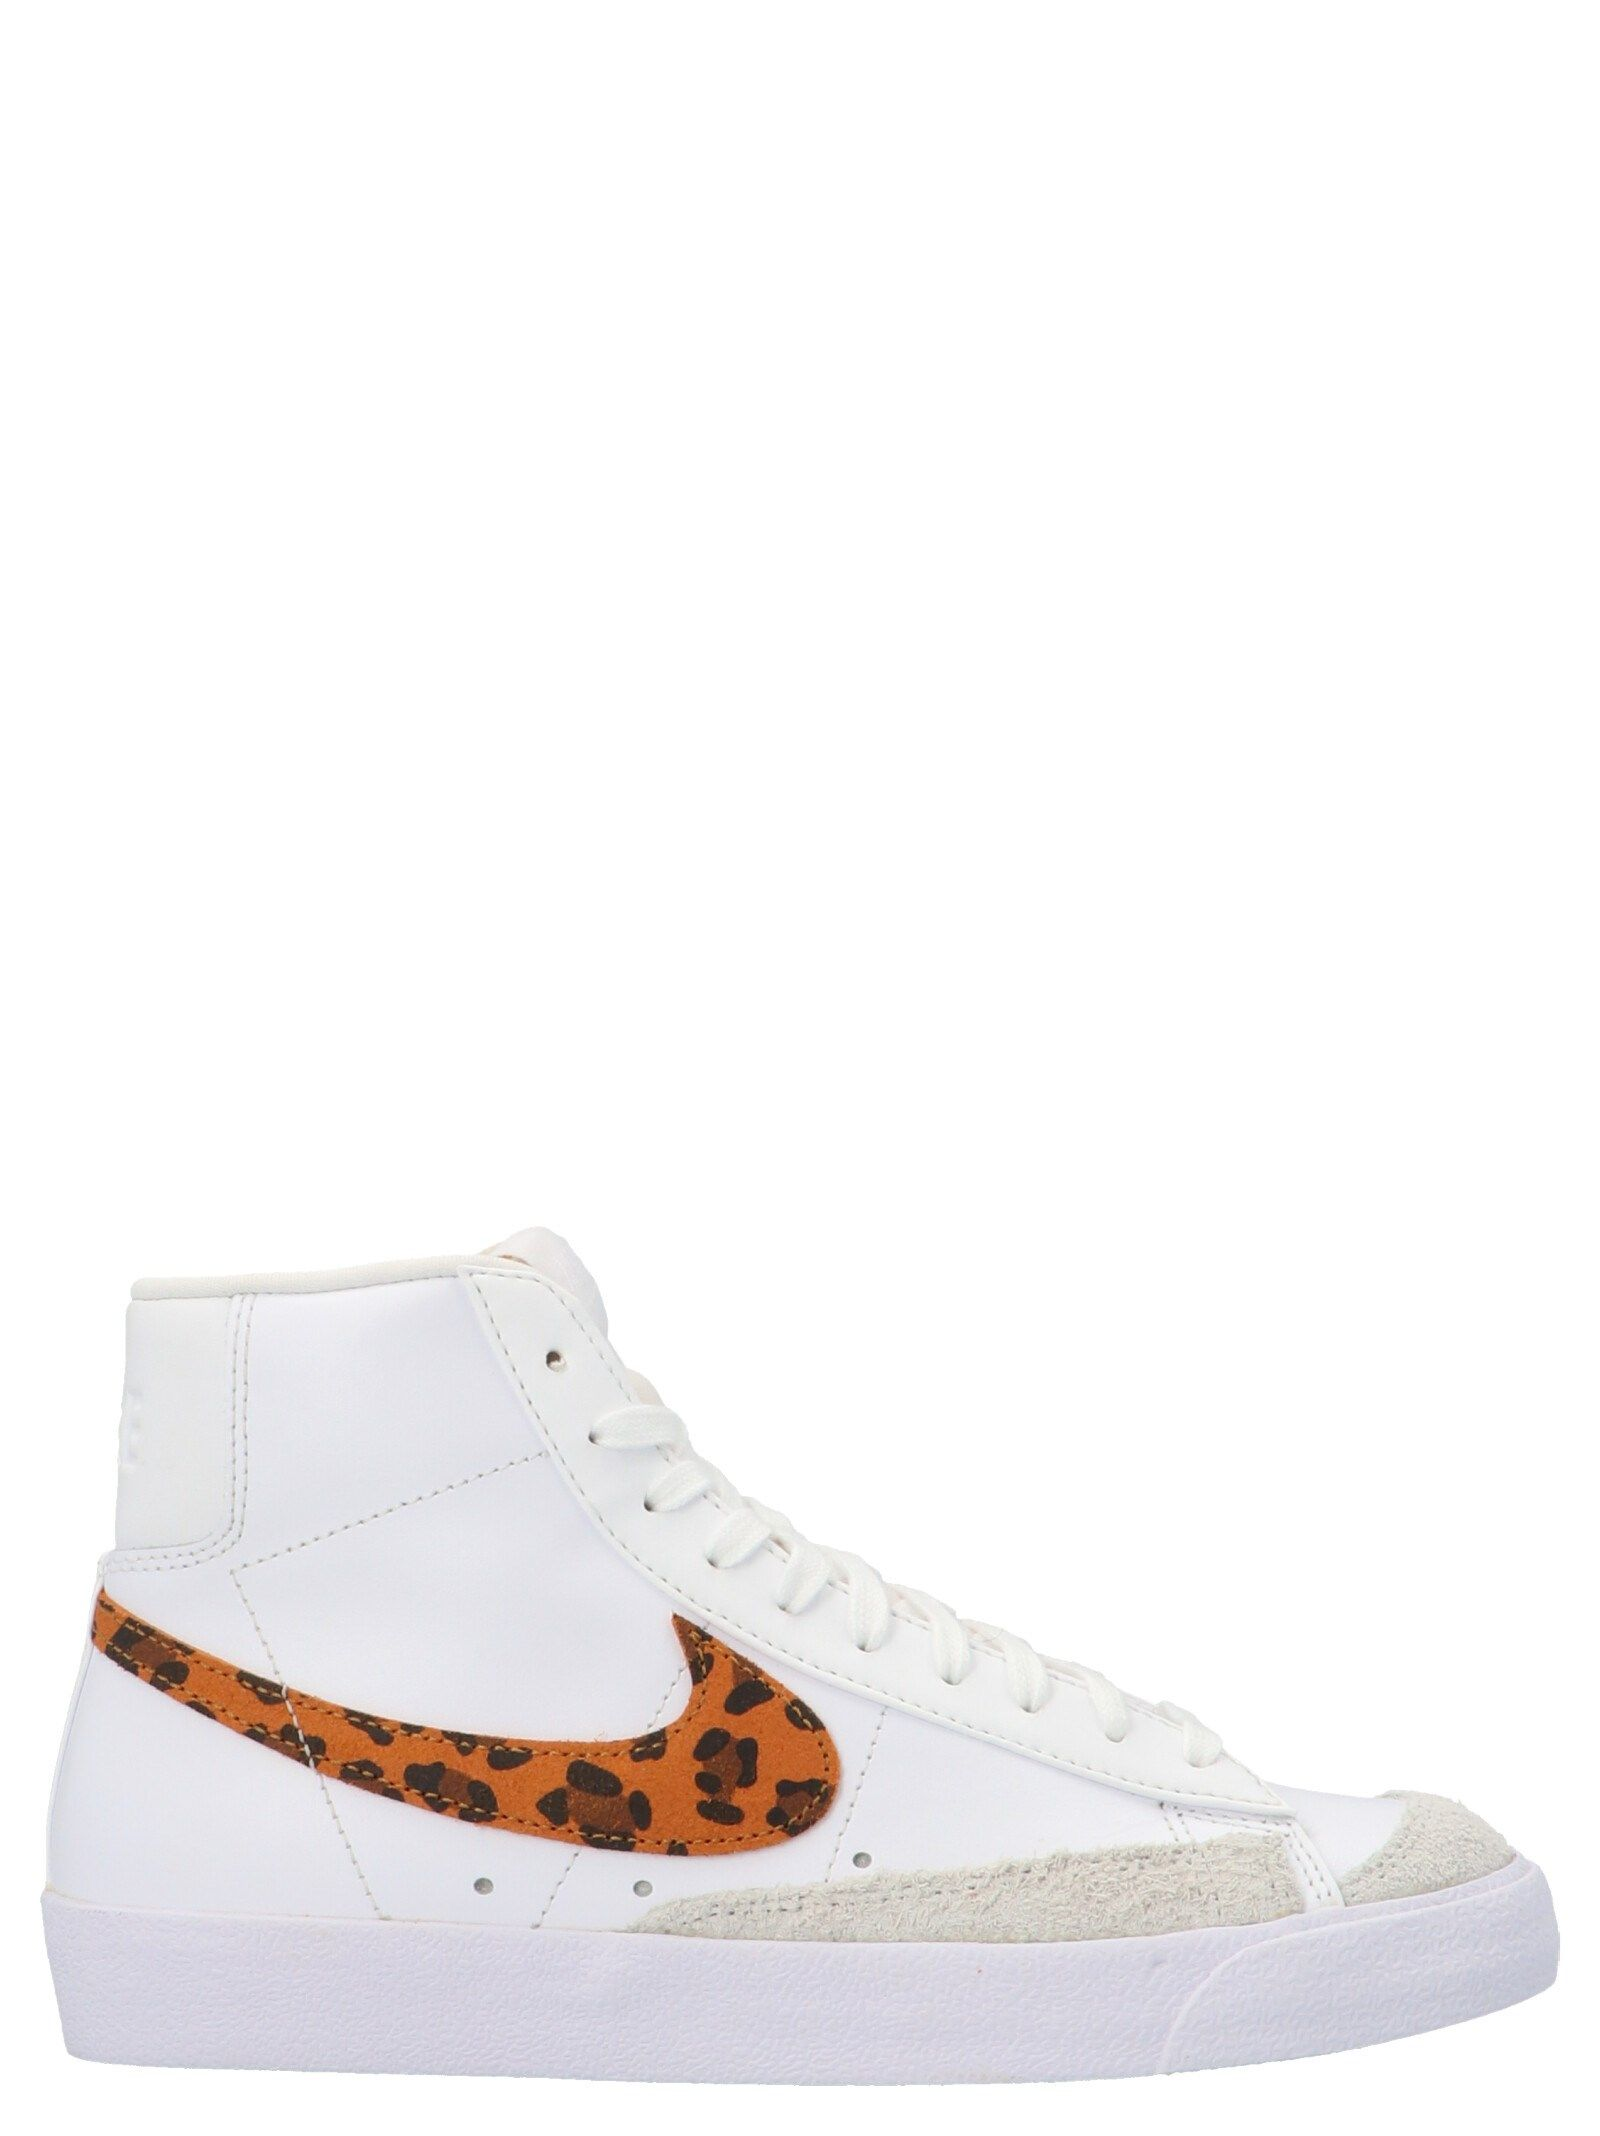 Nike Sneakers NIKE WOMEN'S WHITE OTHER MATERIALS SNEAKERS